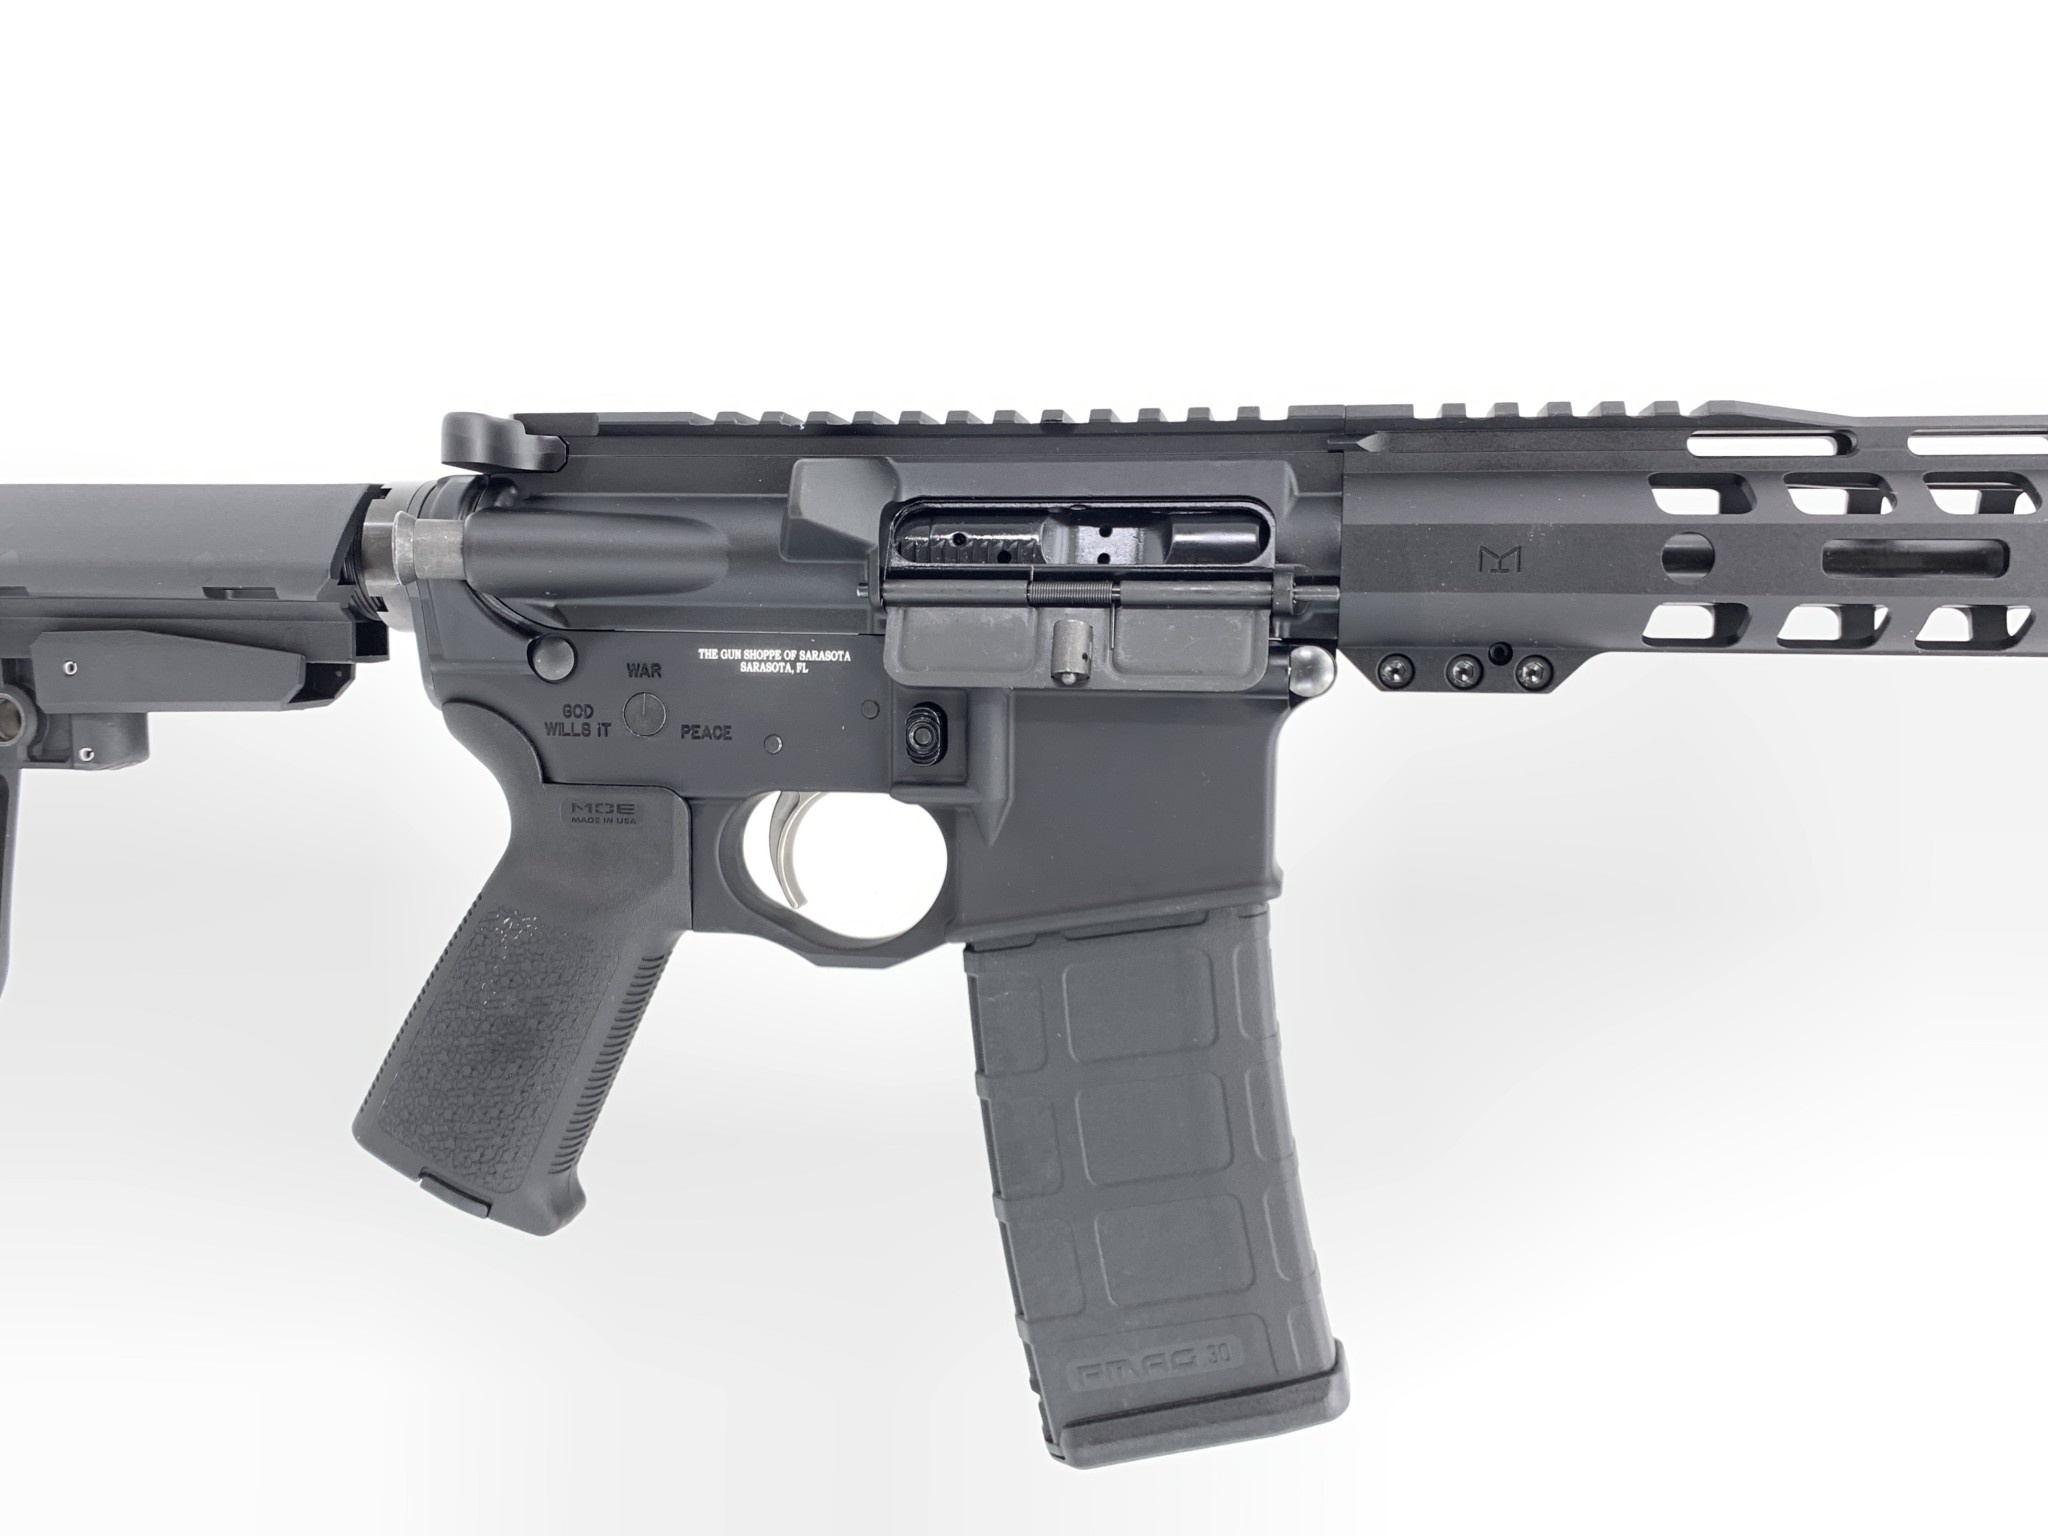 Spike's Tactical CUSTOM SPIKES AR15 PISTOL 5.56